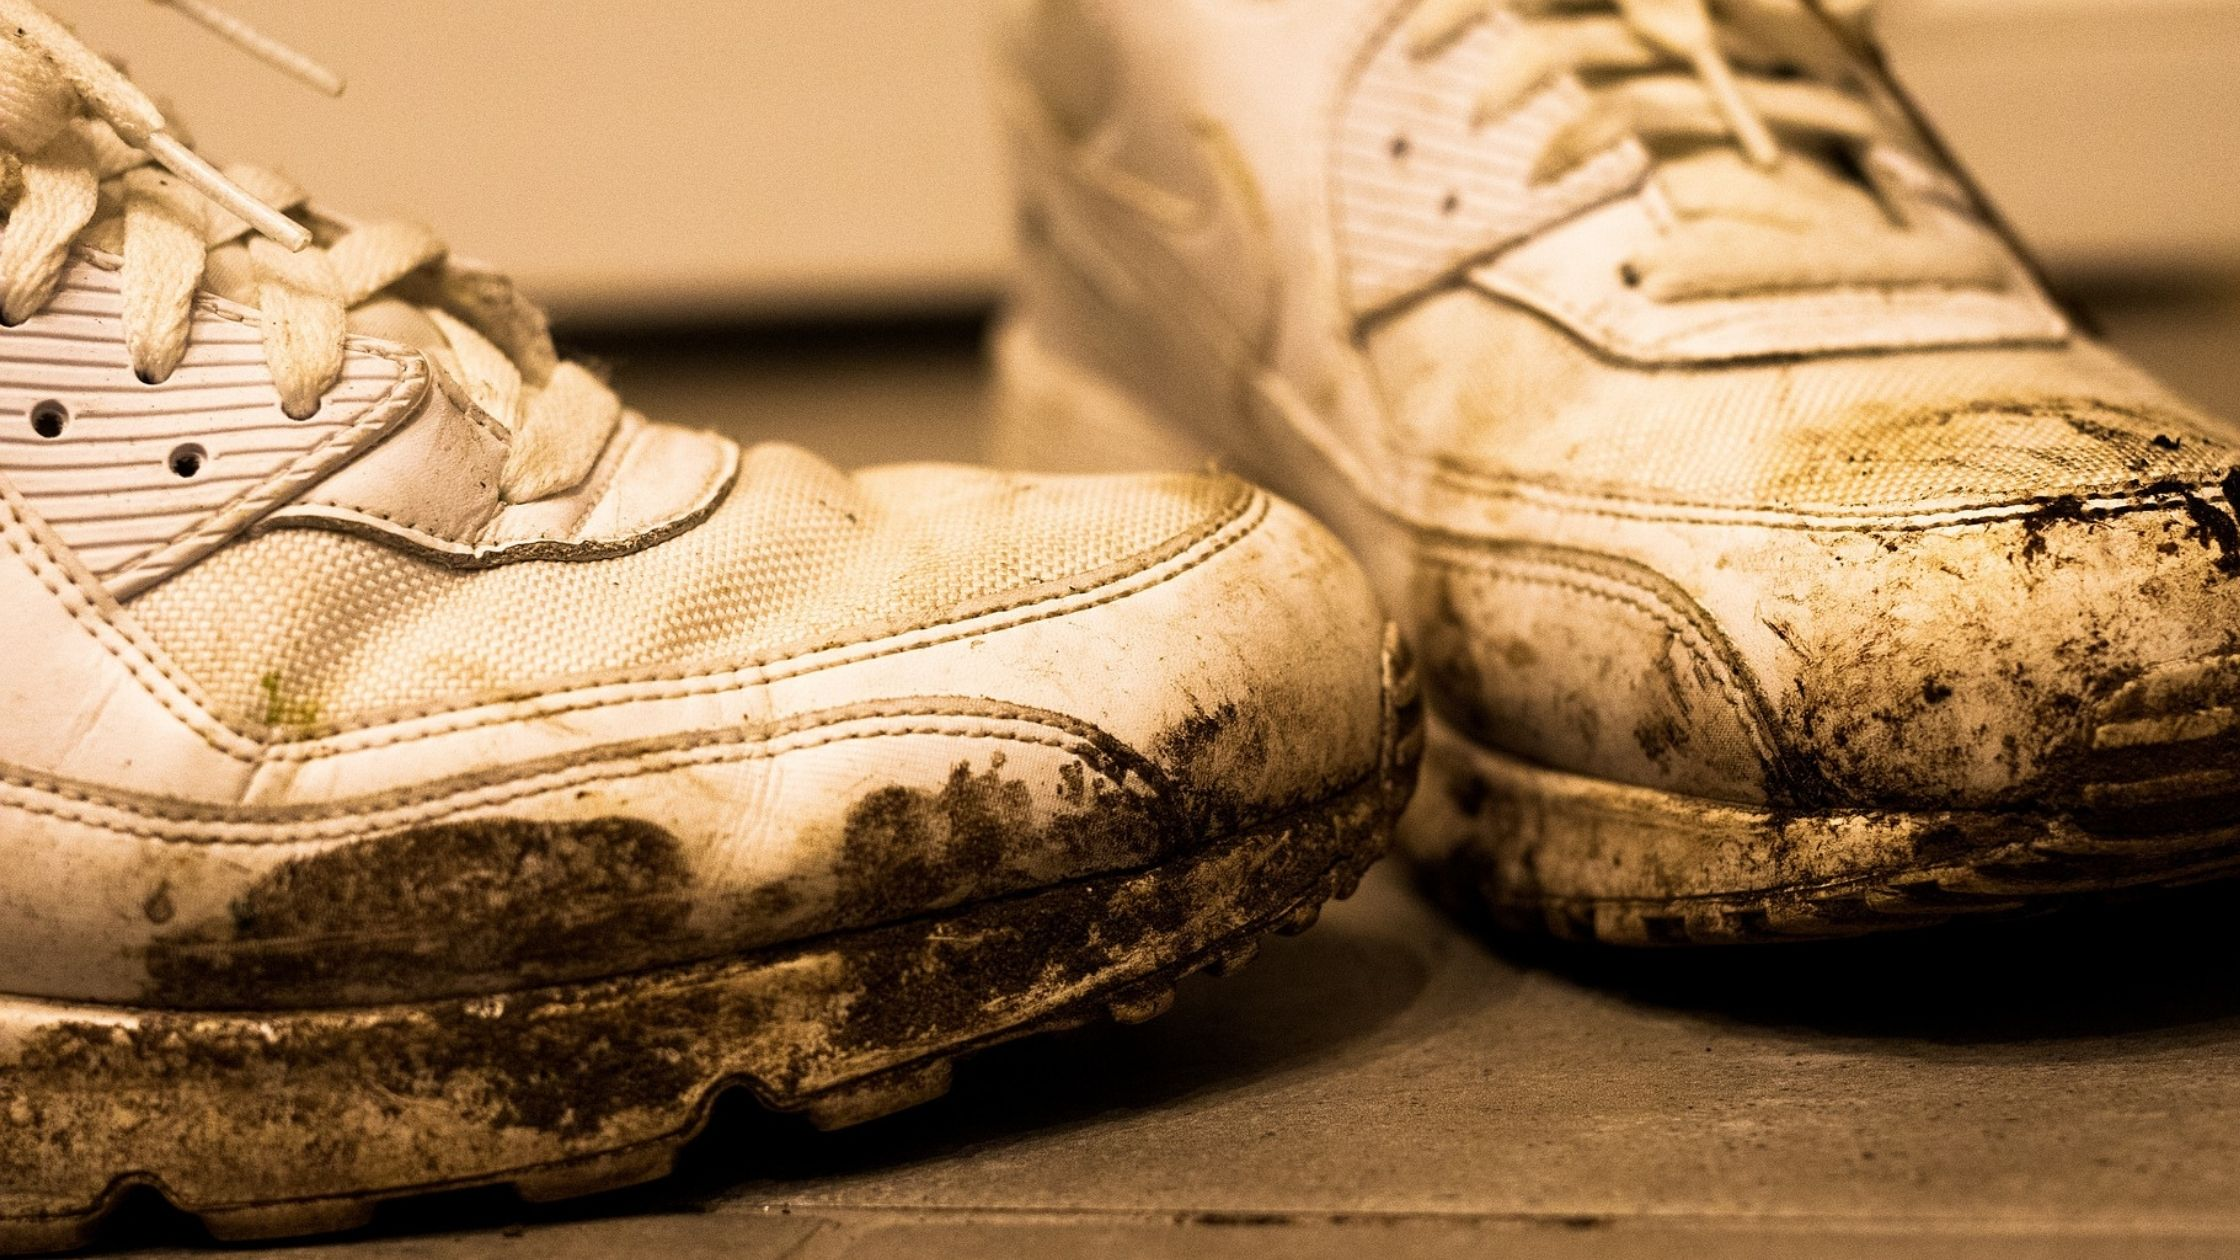 How To Get Tar Off Of Shoes